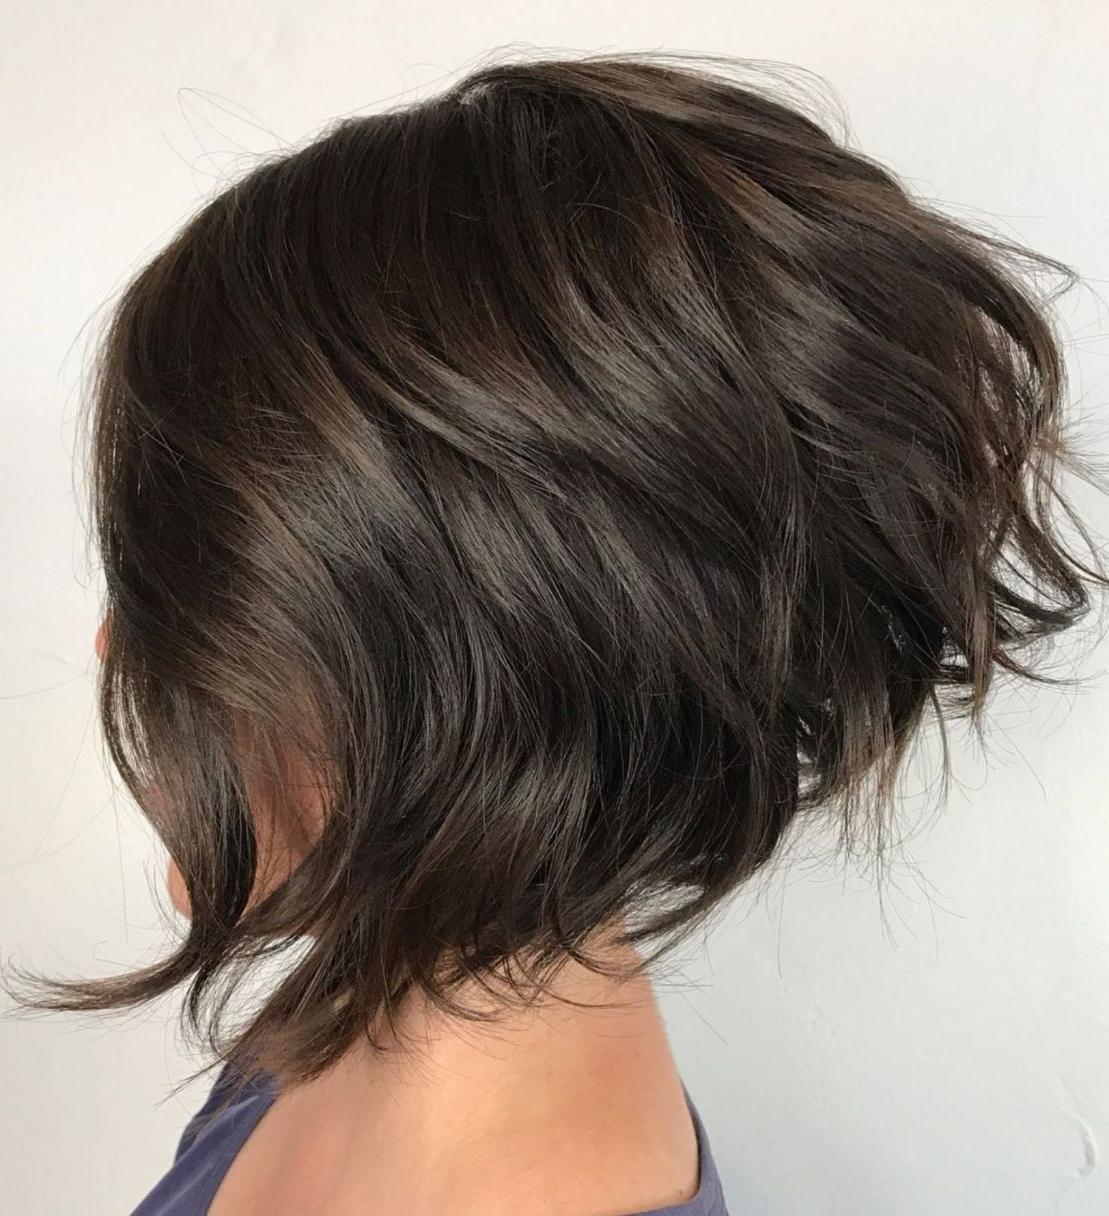 60 Best Short Bob Haircuts And Hairstyles For Women | Hair Throughout Angled Burgundy Bob Hairstyles With Voluminous Layers (View 4 of 20)